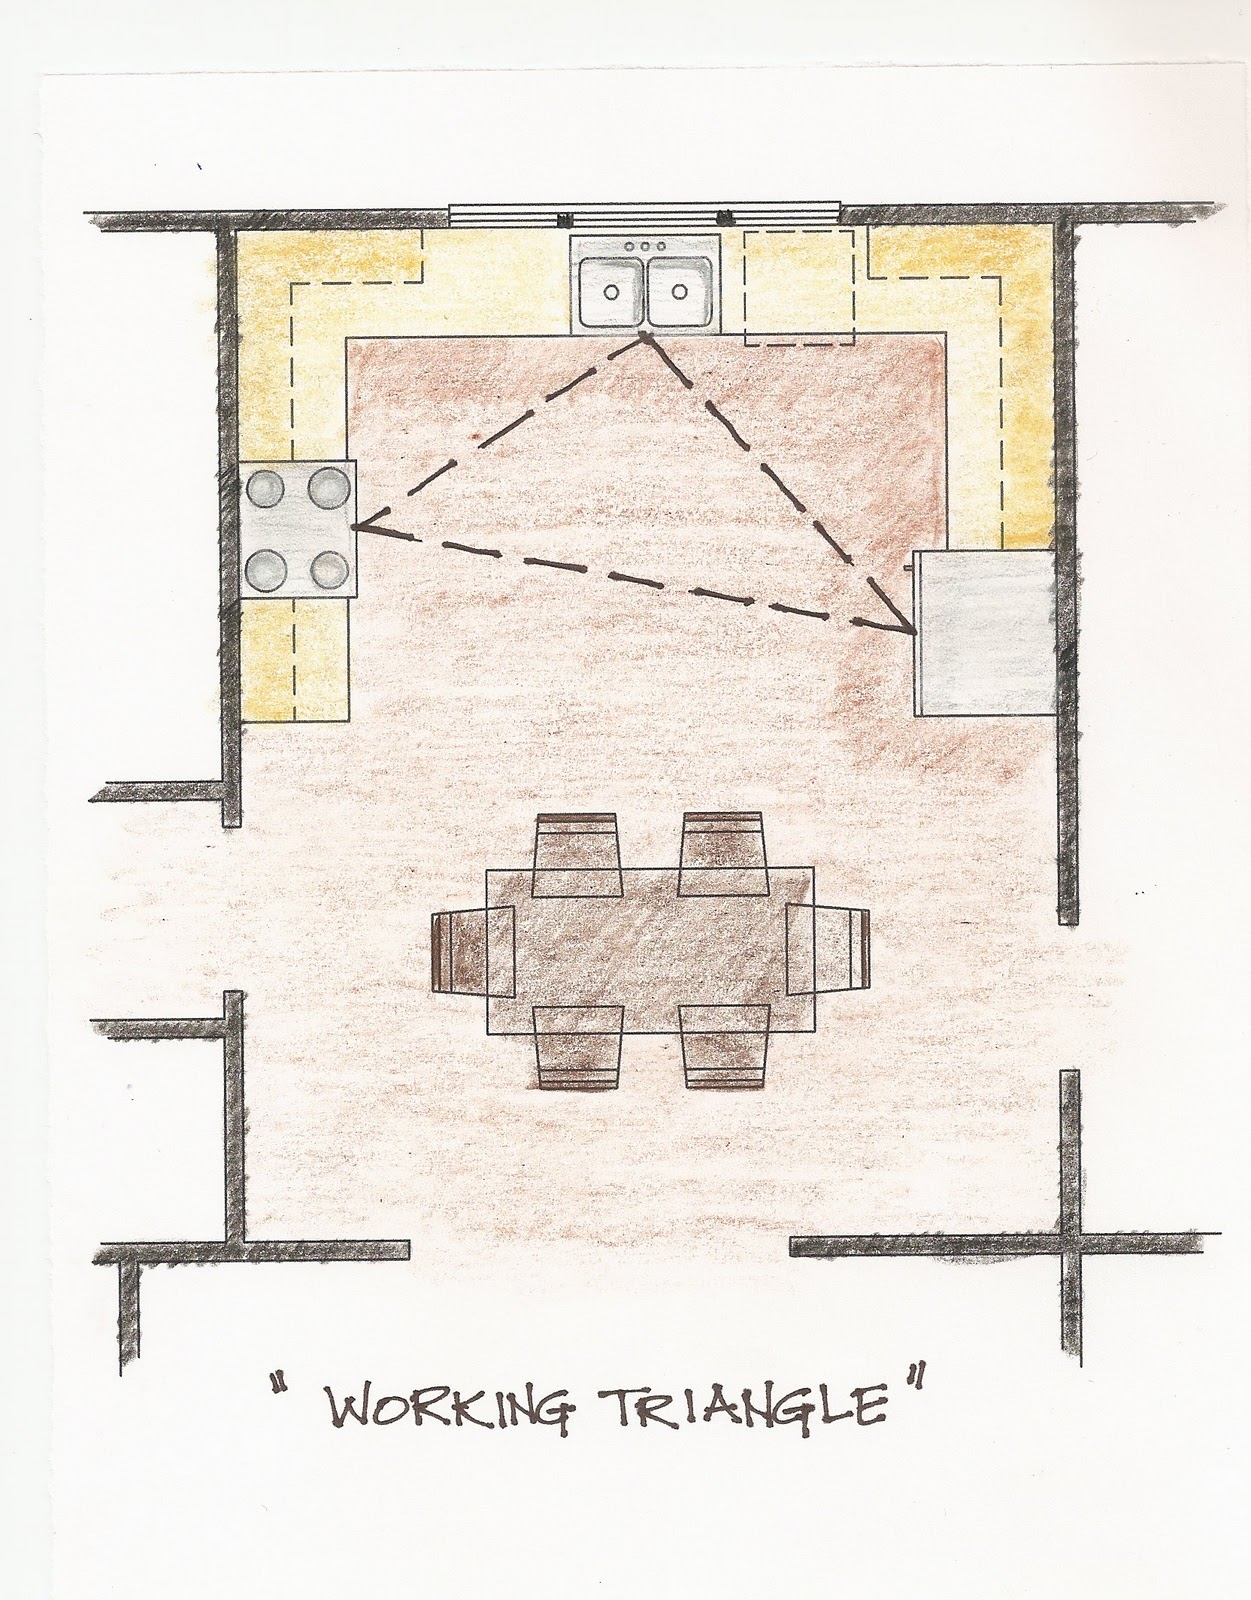 Kitchen Trends How the Island Turned the Triangle into a Center